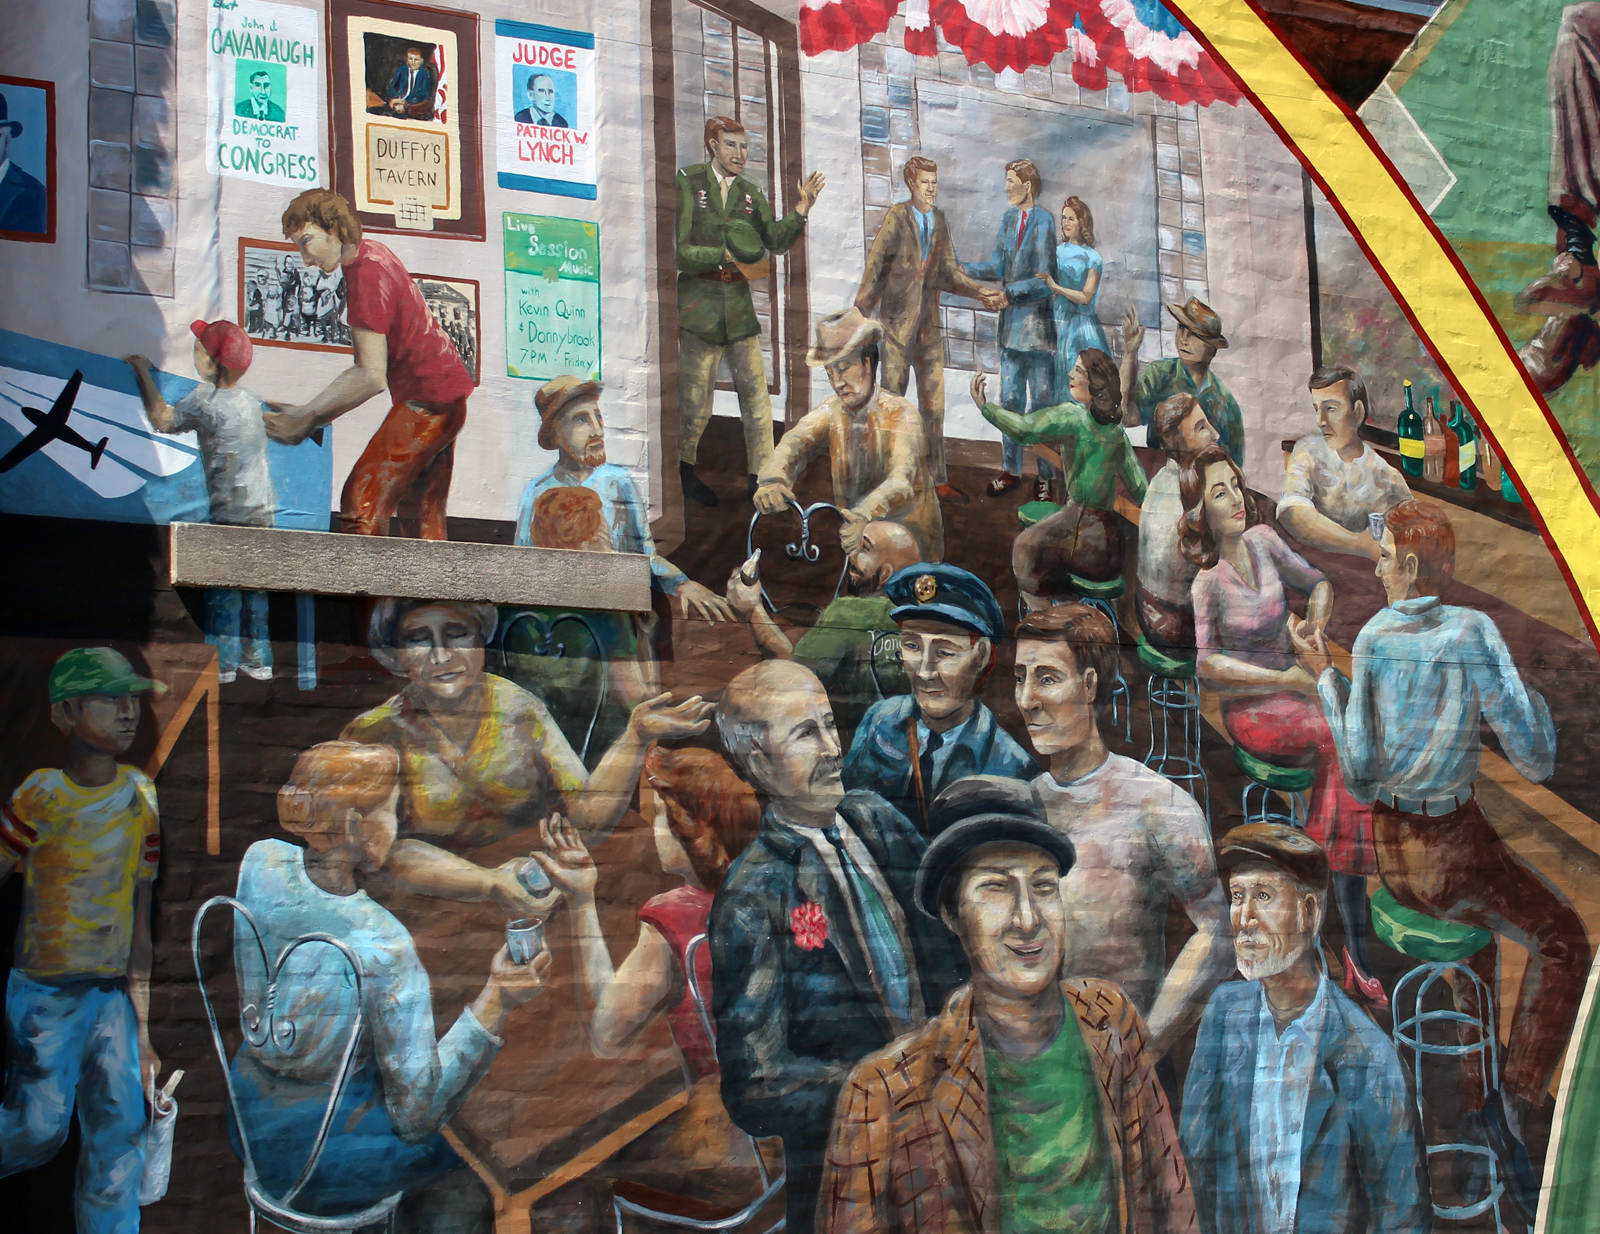 A new mural at Donohue's Irish Pub at 33rd and L streets shows the story of the progress of the Irish community in Nebraska. It is the latest public artwork by the South Omaha Mural Project. (Photo by Scott Stewart)